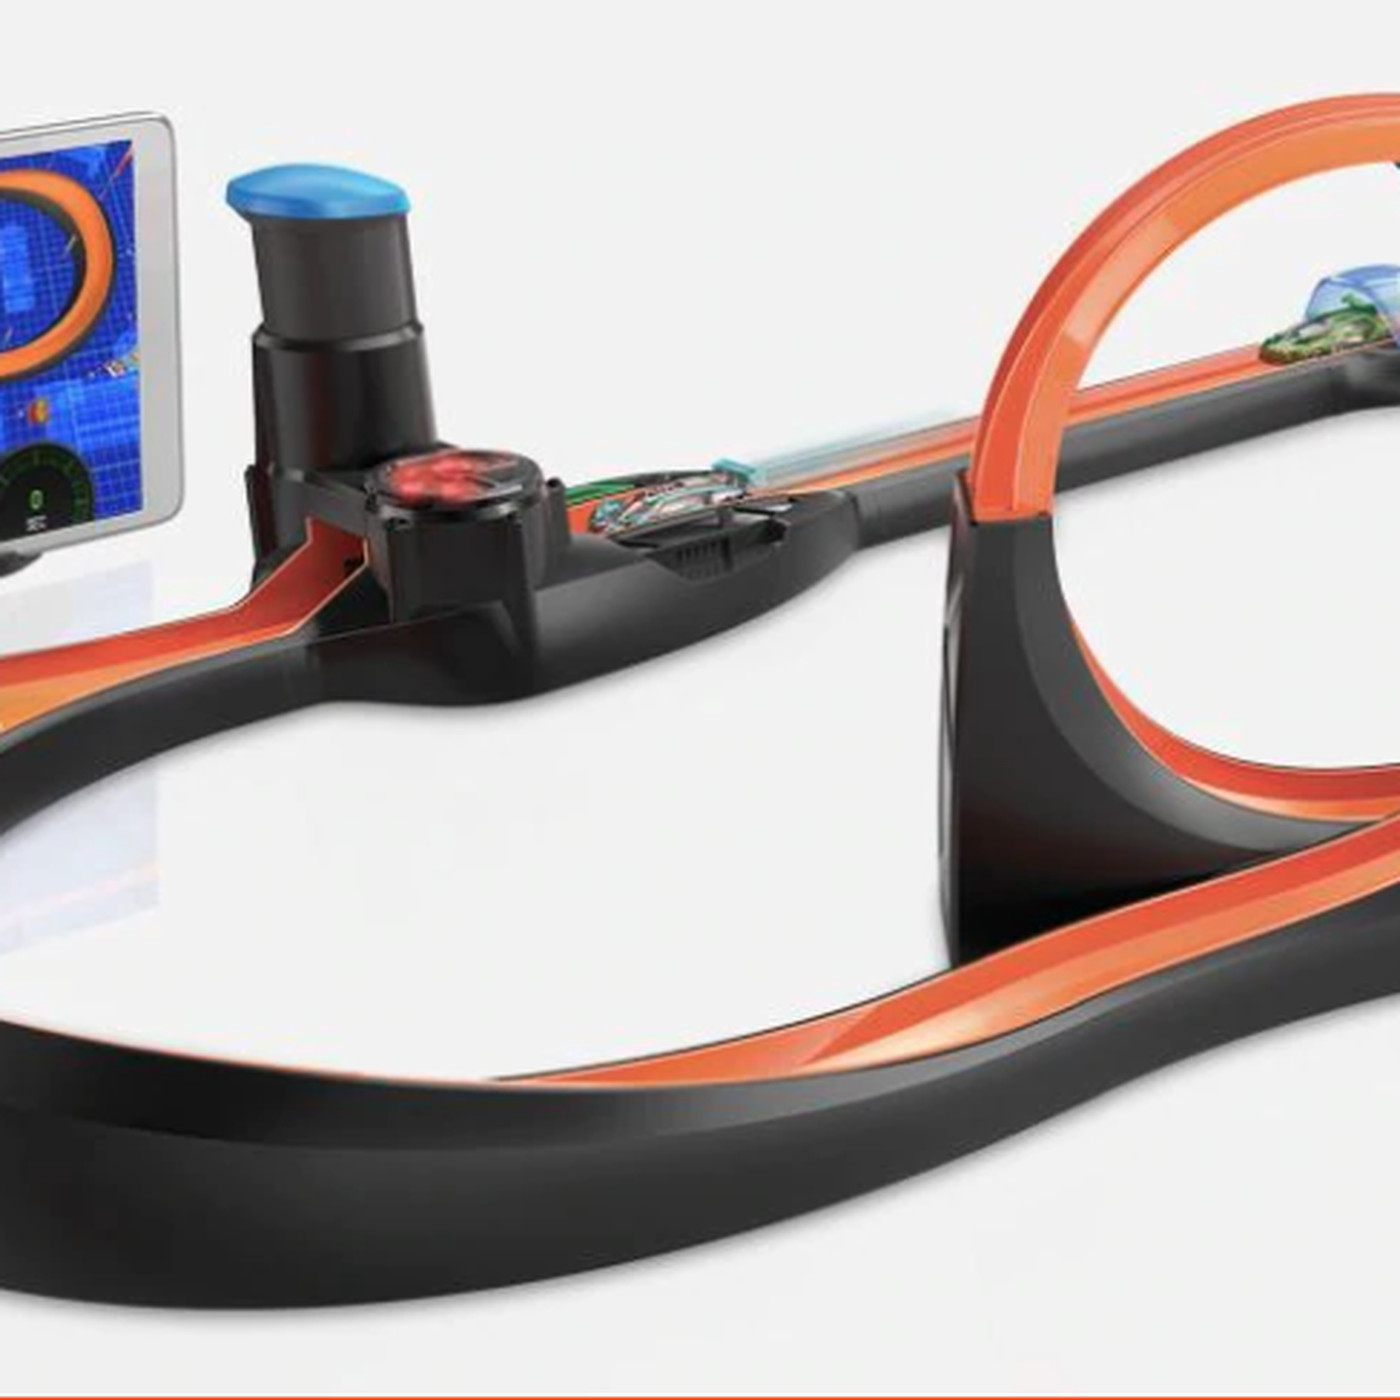 Hot Wife Challenge Tumblr hot wheels goes digital with smart tracks and nfc cars